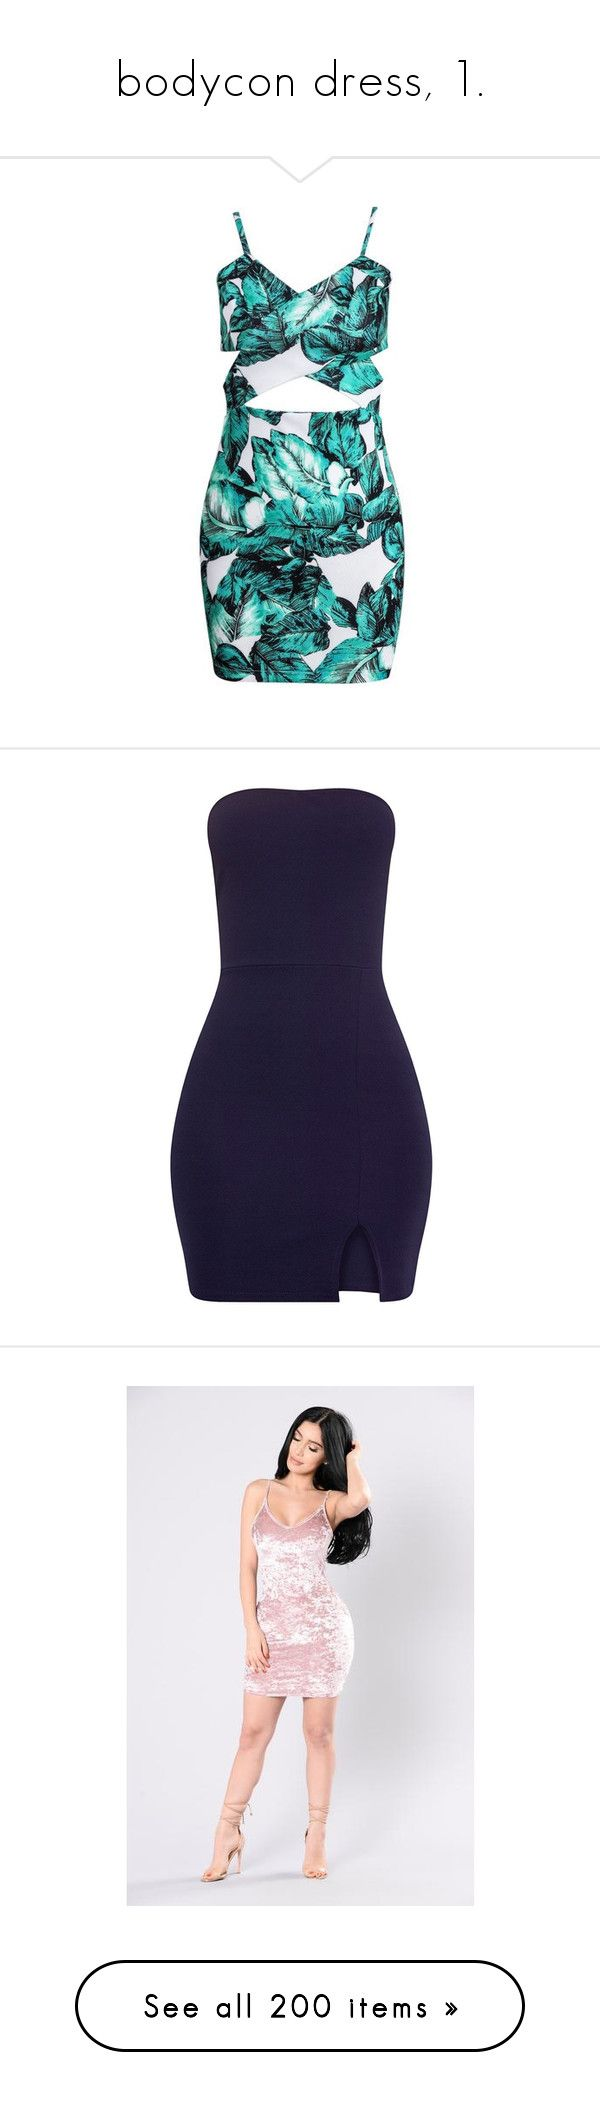 """""""bodycon dress, 1."""" by theimanimo ❤ liked on Polyvore featuring dresses, vestidos, bodycon dress, patterned bodycon dress, print dress, pattern dress, blue pattern dress, bandeau dress, body con dresses and bandage dresses"""